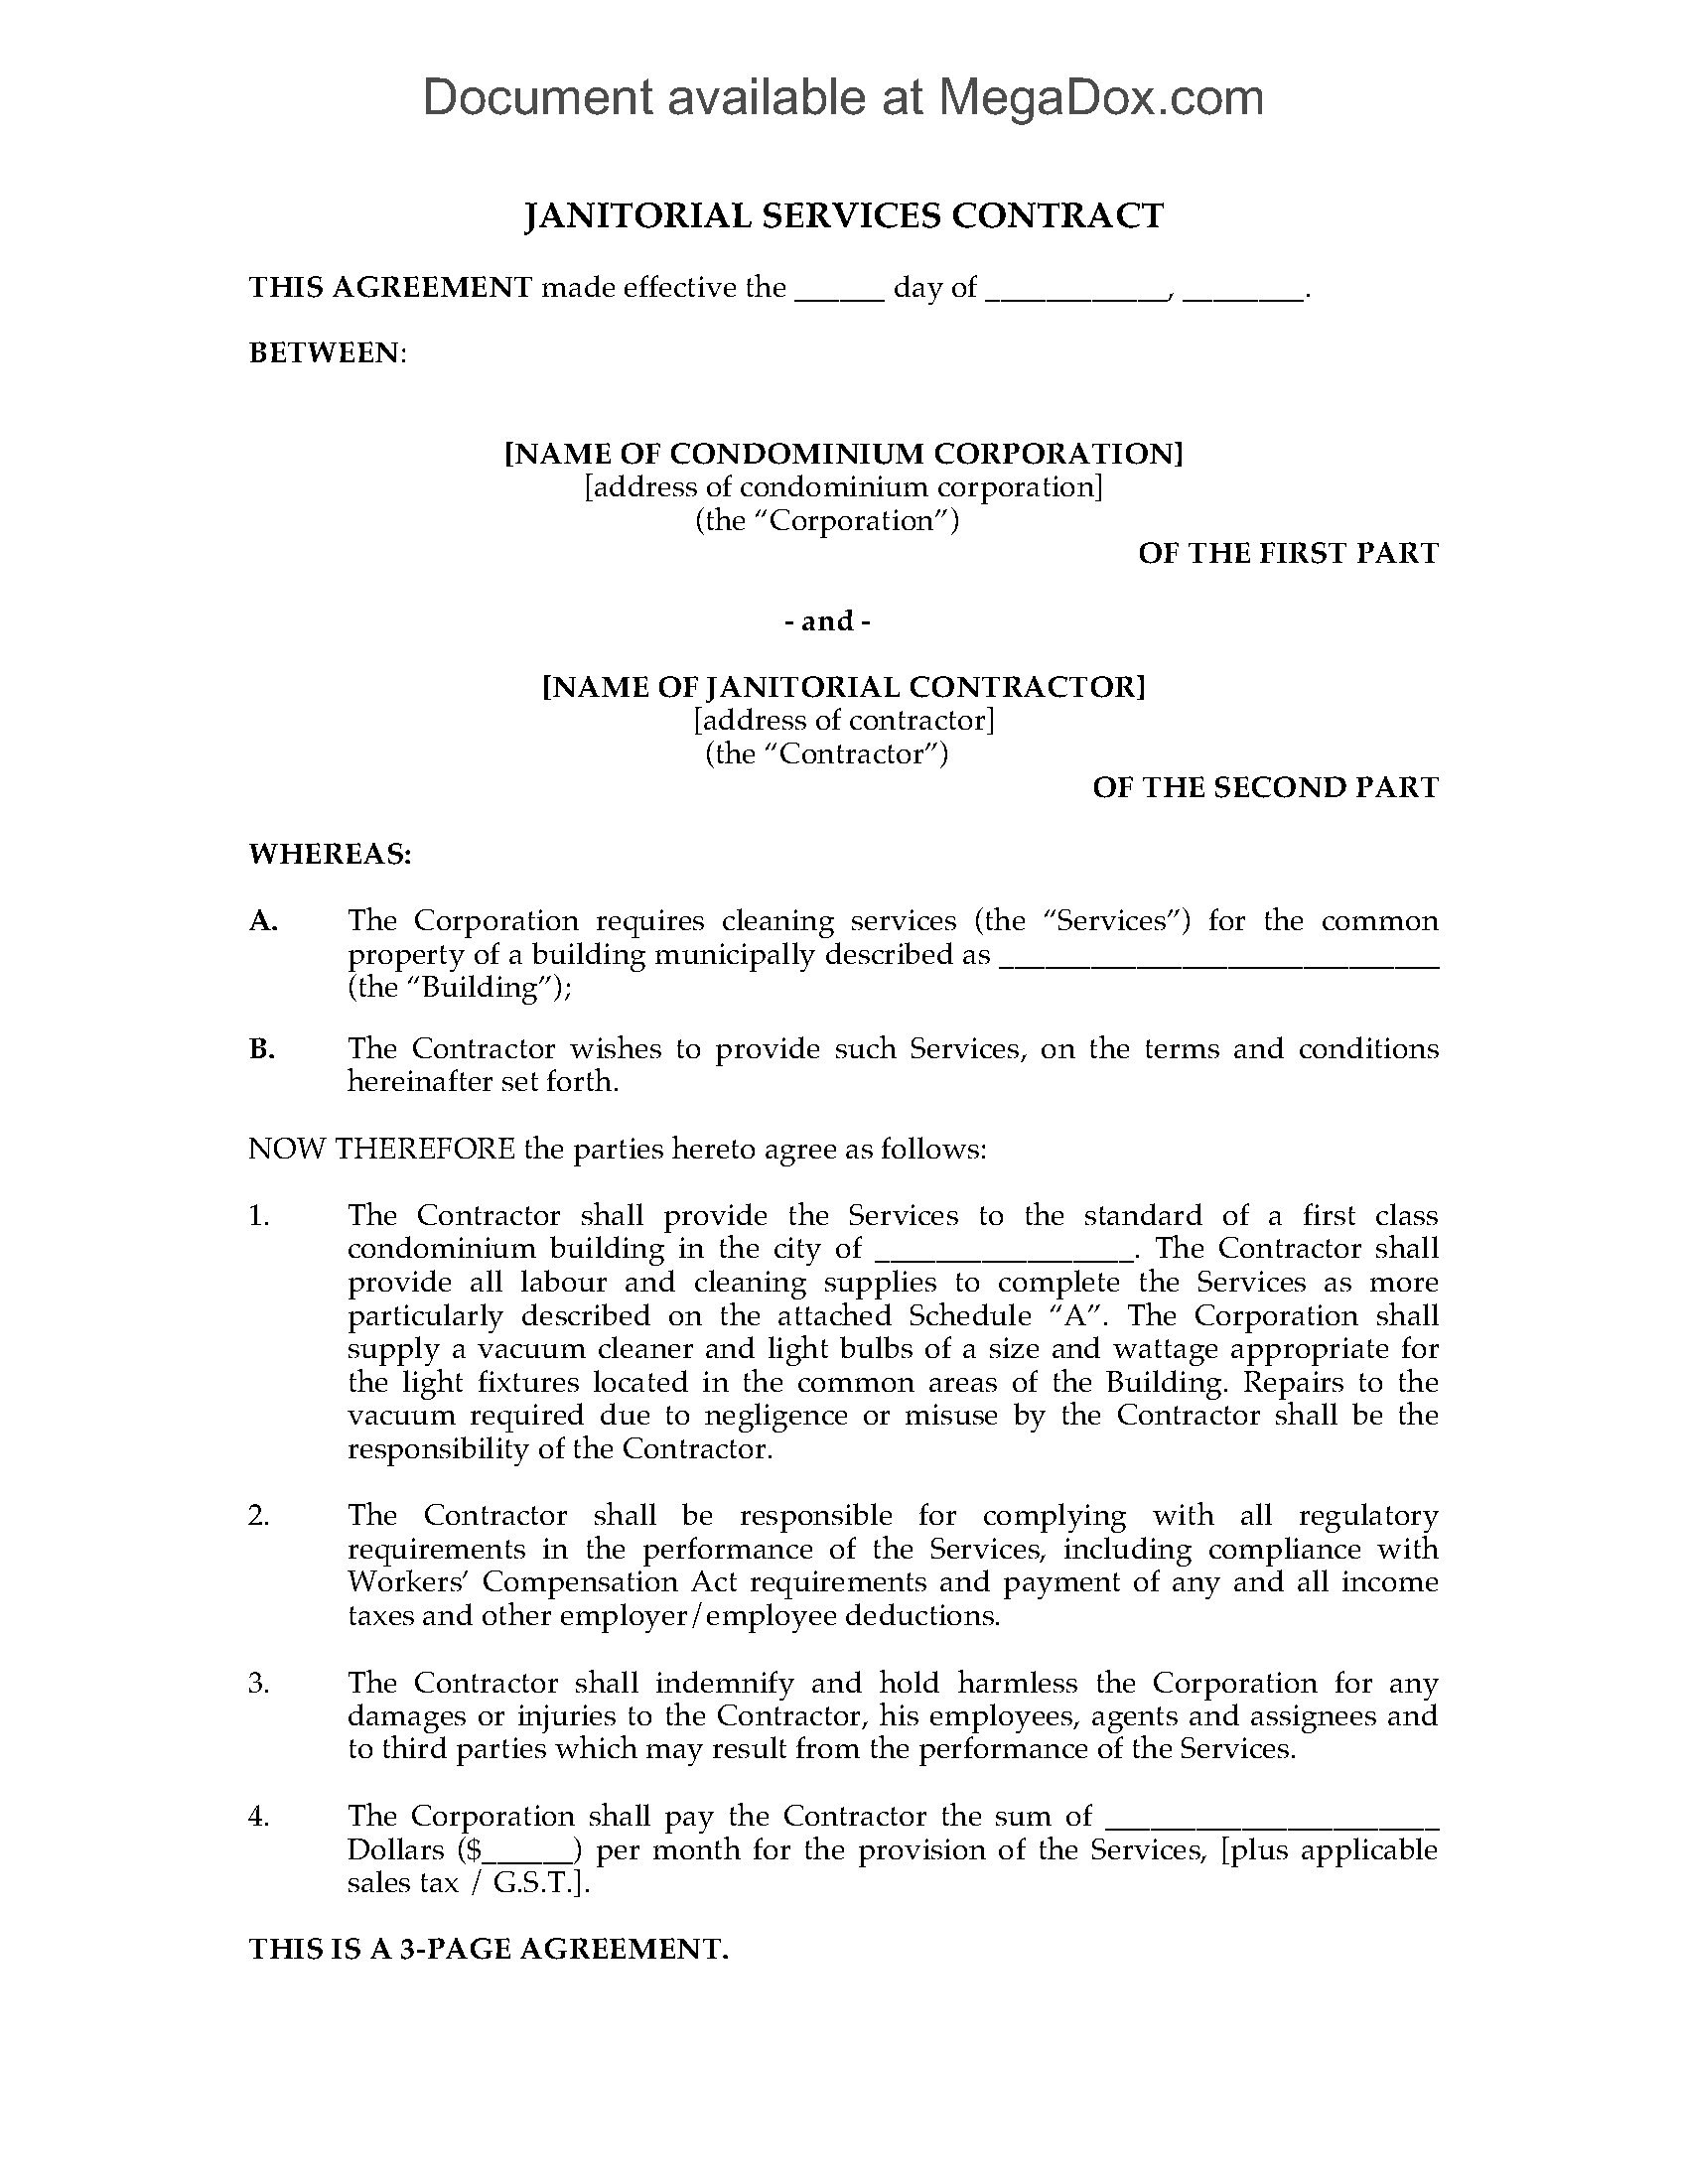 Cleaning Contract For Condominium Building  Legal Forms And Within Janitorial Service Agreement Template